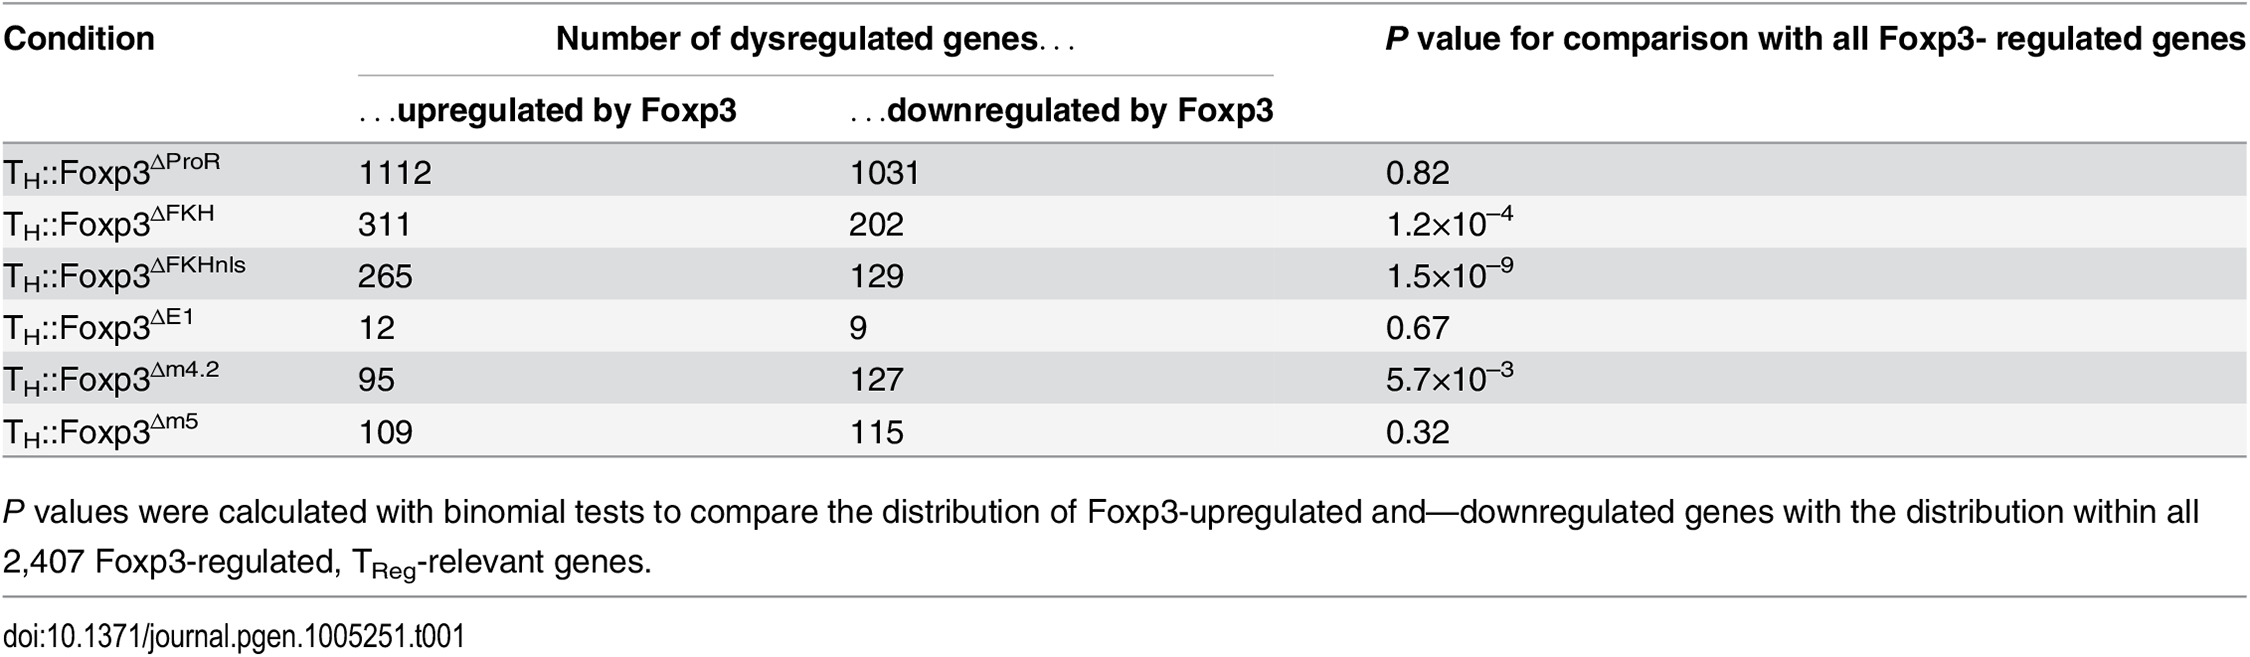 Dysregulation of Foxp3-upregulated and Foxp3-downregulated genes by Foxp3 ProR subdomain mutations.